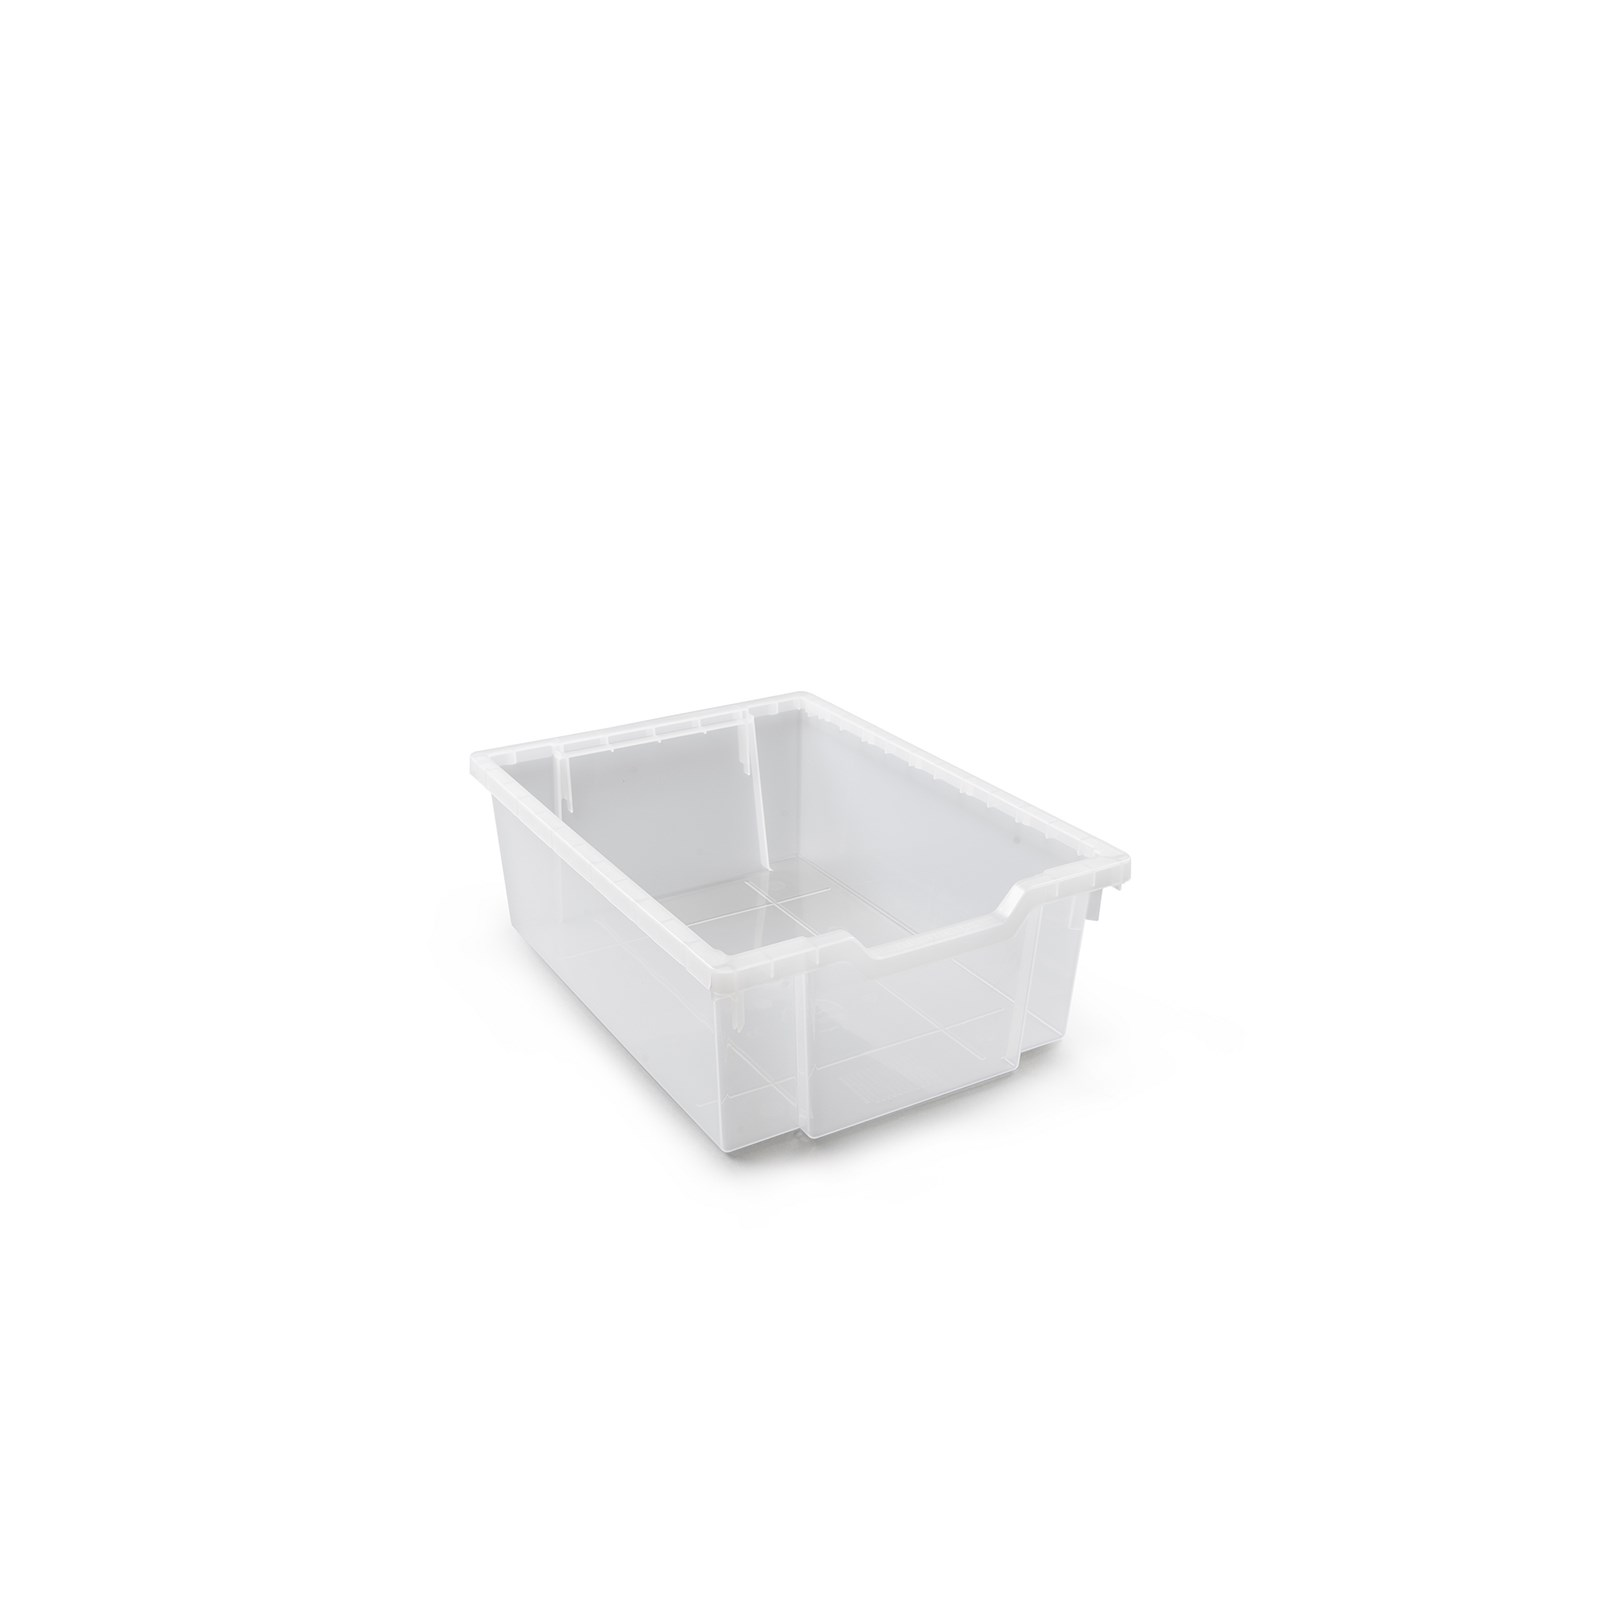 Gratnells Deep Antimicrobial Tray Translucent